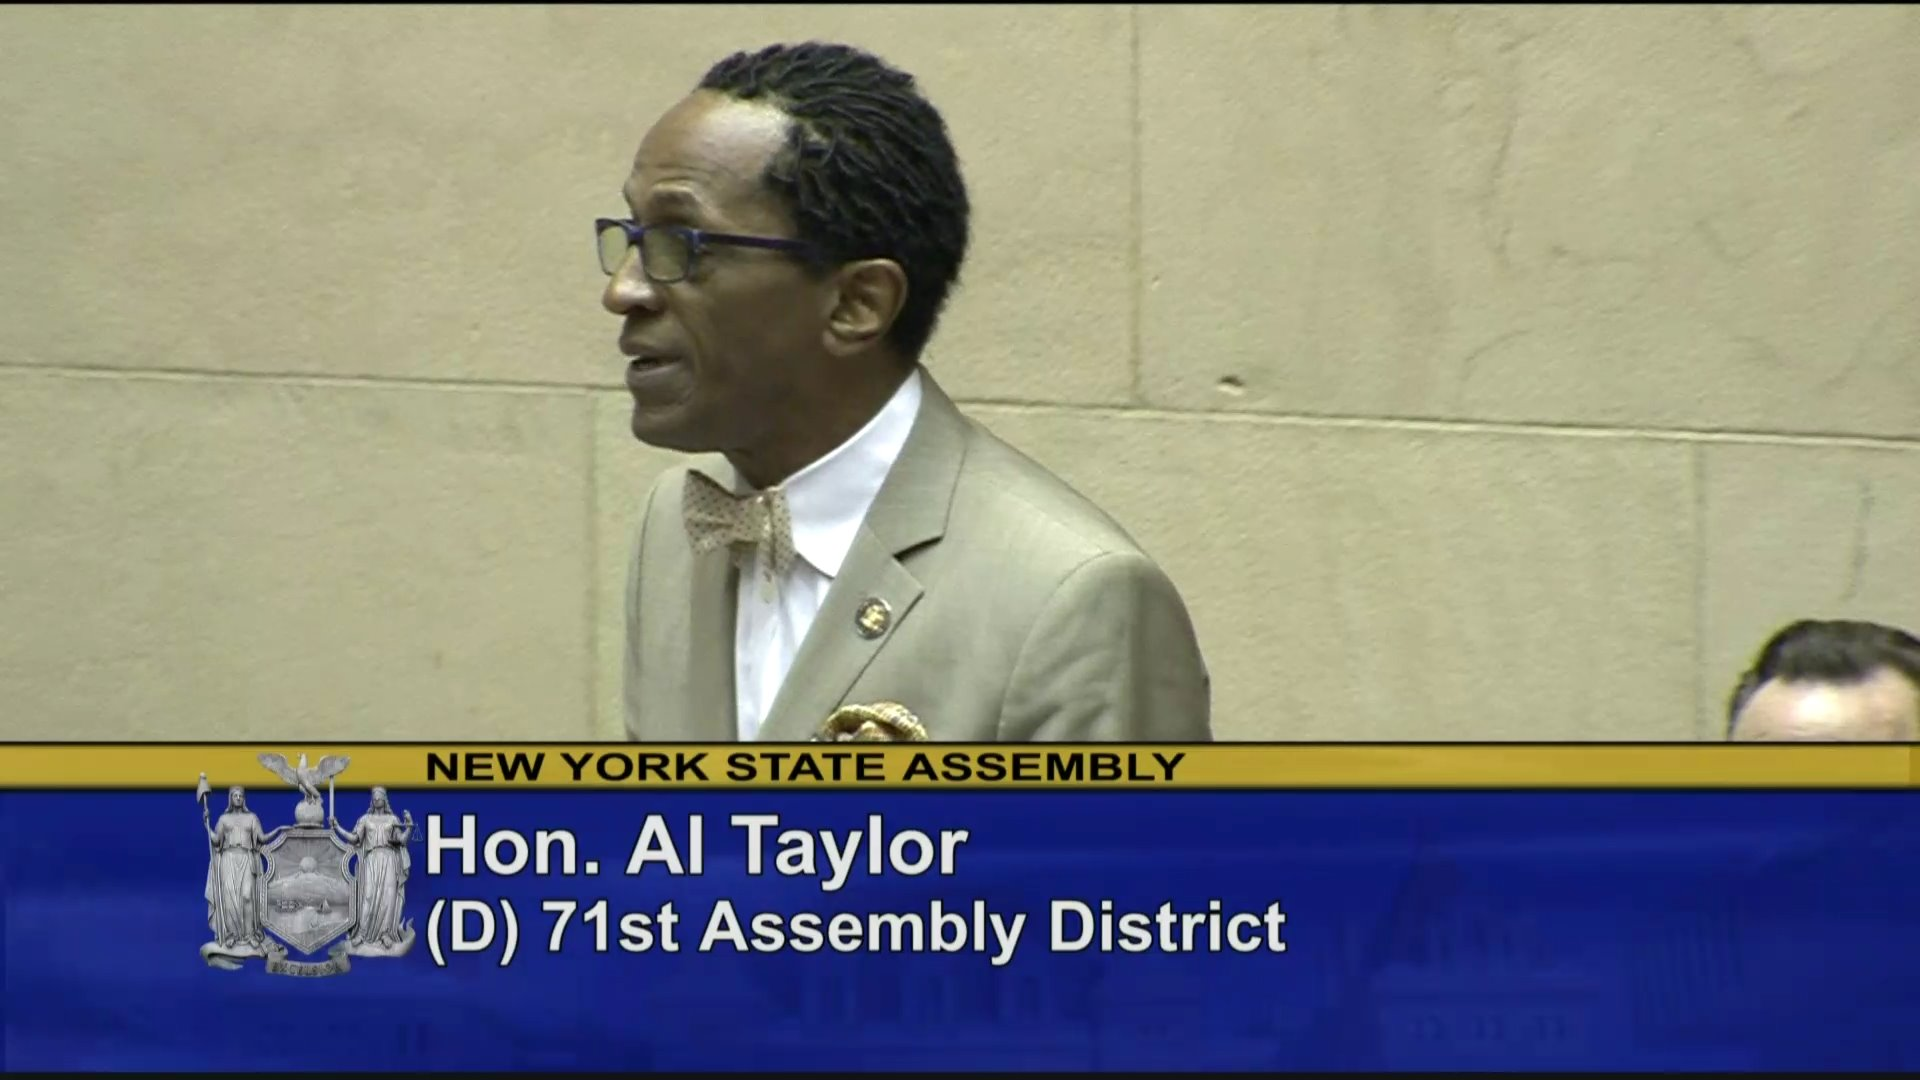 Assemblyman Taylor Welcomes Members of the Garifuna Community